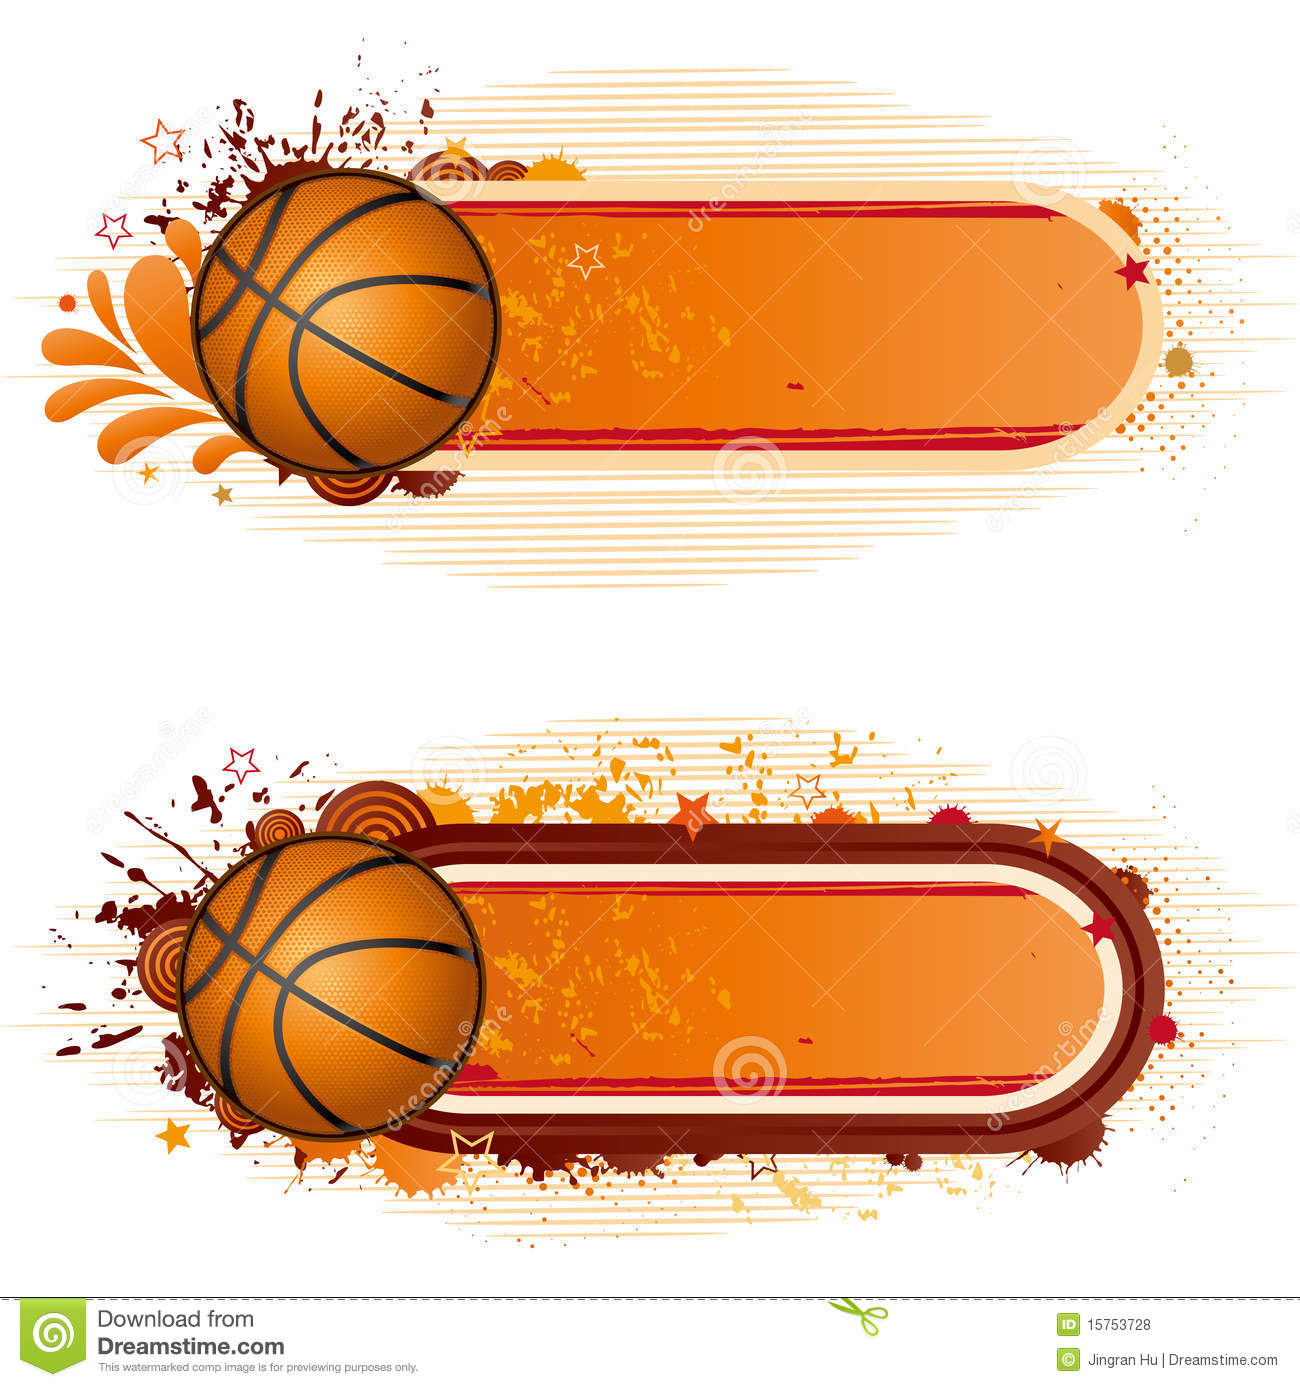 basketball border stock illustrations 258 basketball border stock rh dreamstime com Basketball Player Clip Art Basketball Silhouette Clip Art